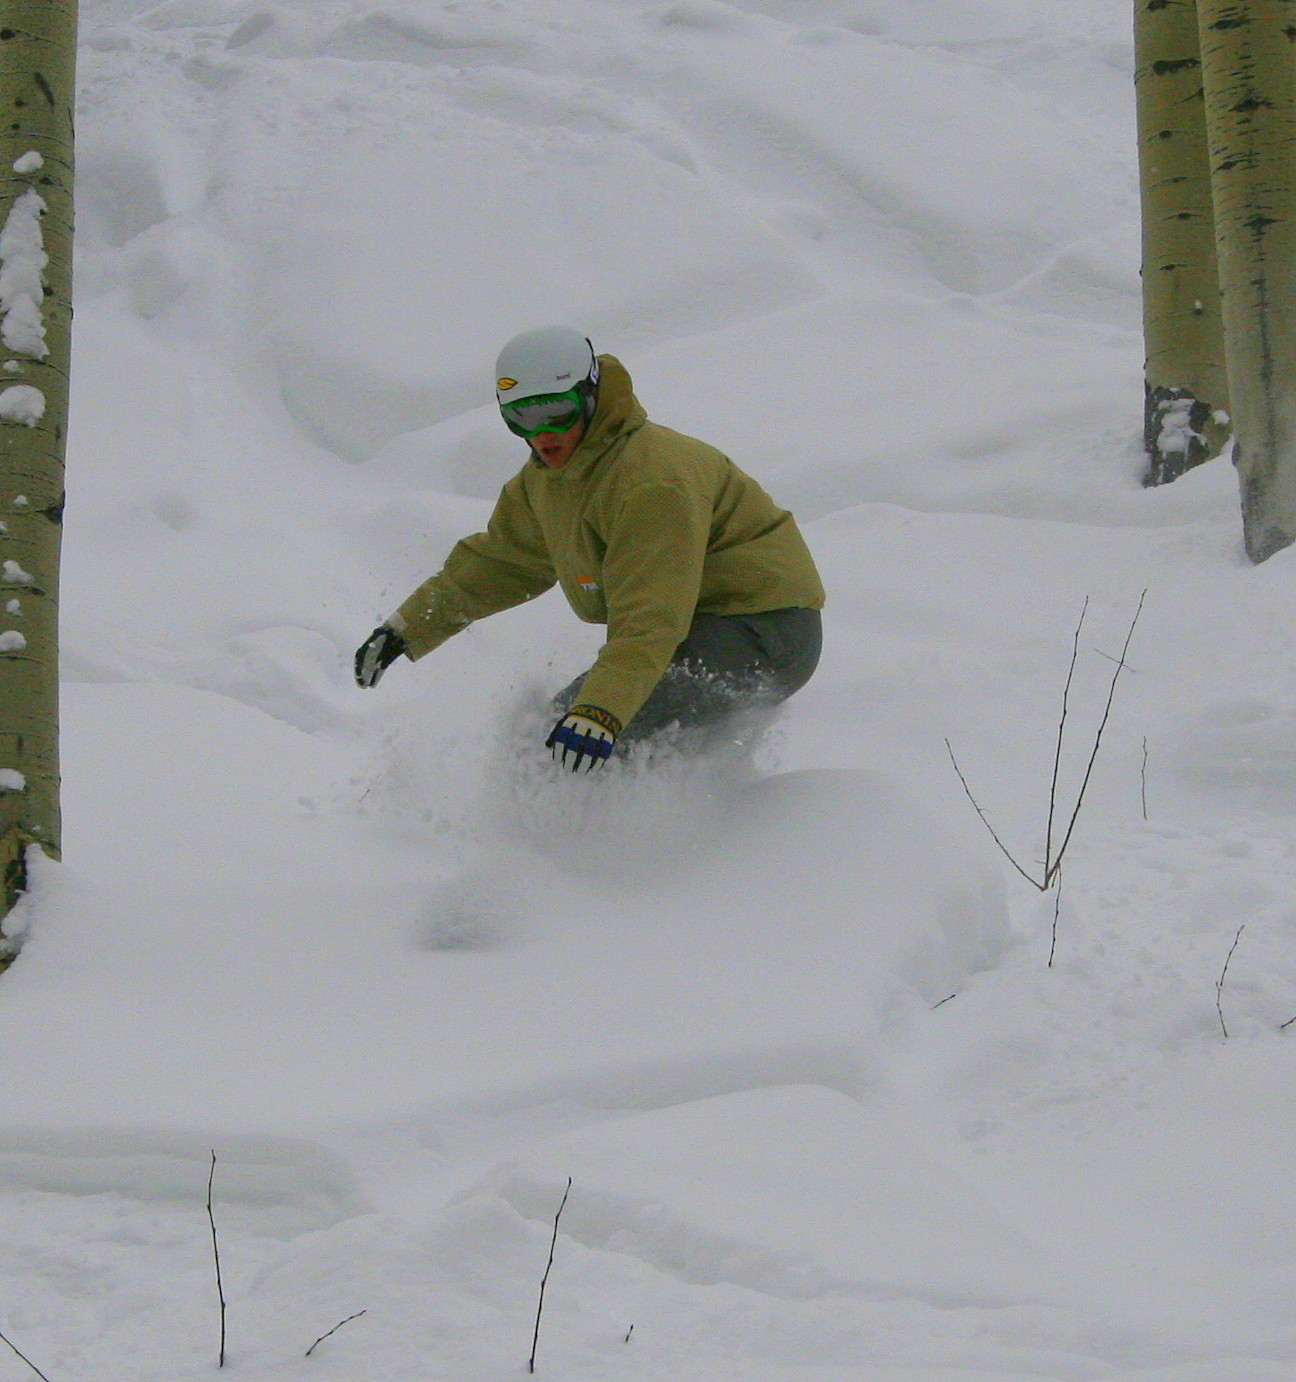 Powderhorn snowboardingundefined